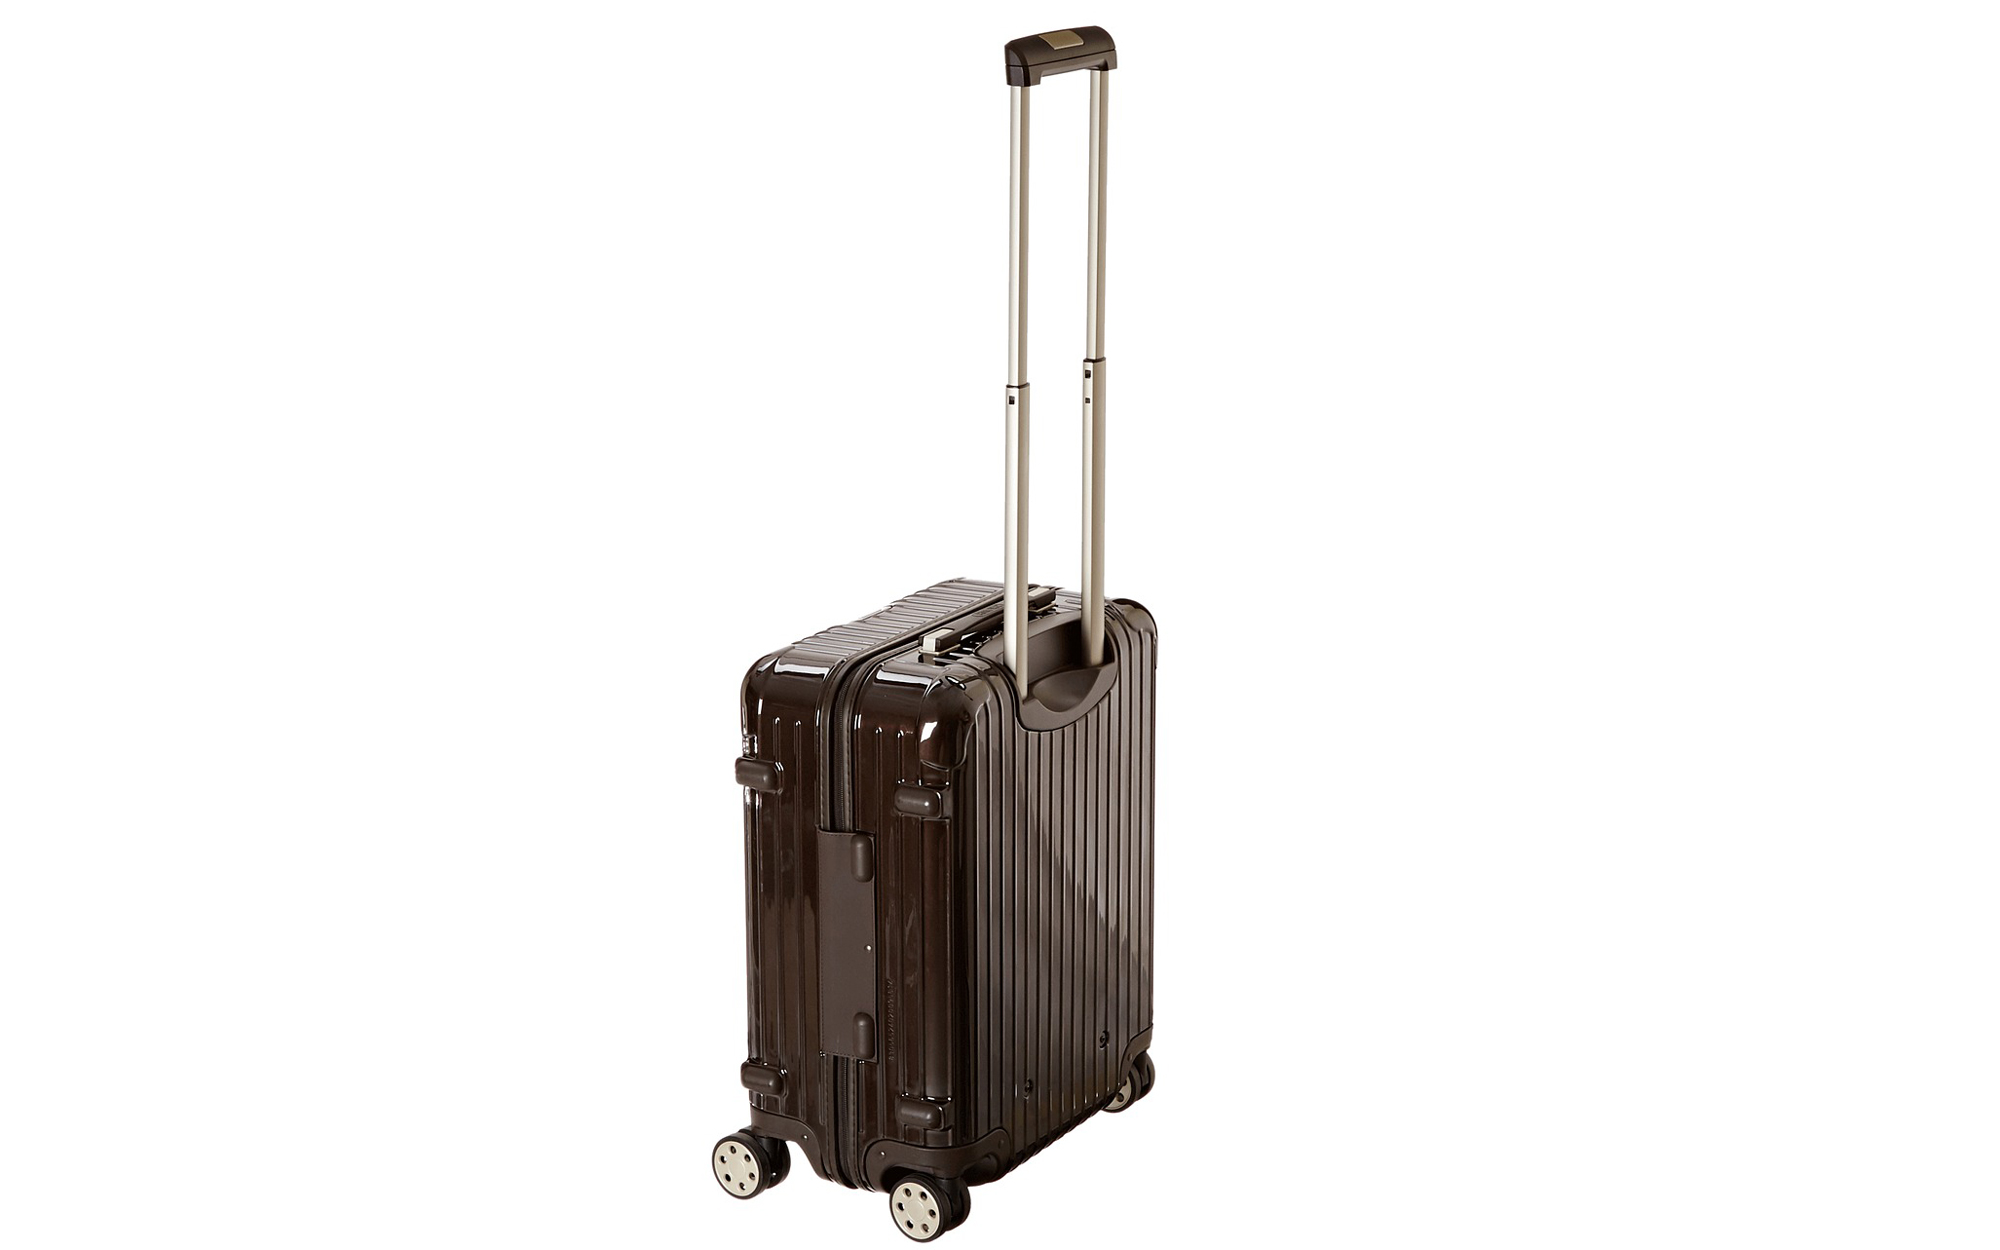 Best Carry-On Luggage for Business Travel: Rimowa lightweight overnight business case